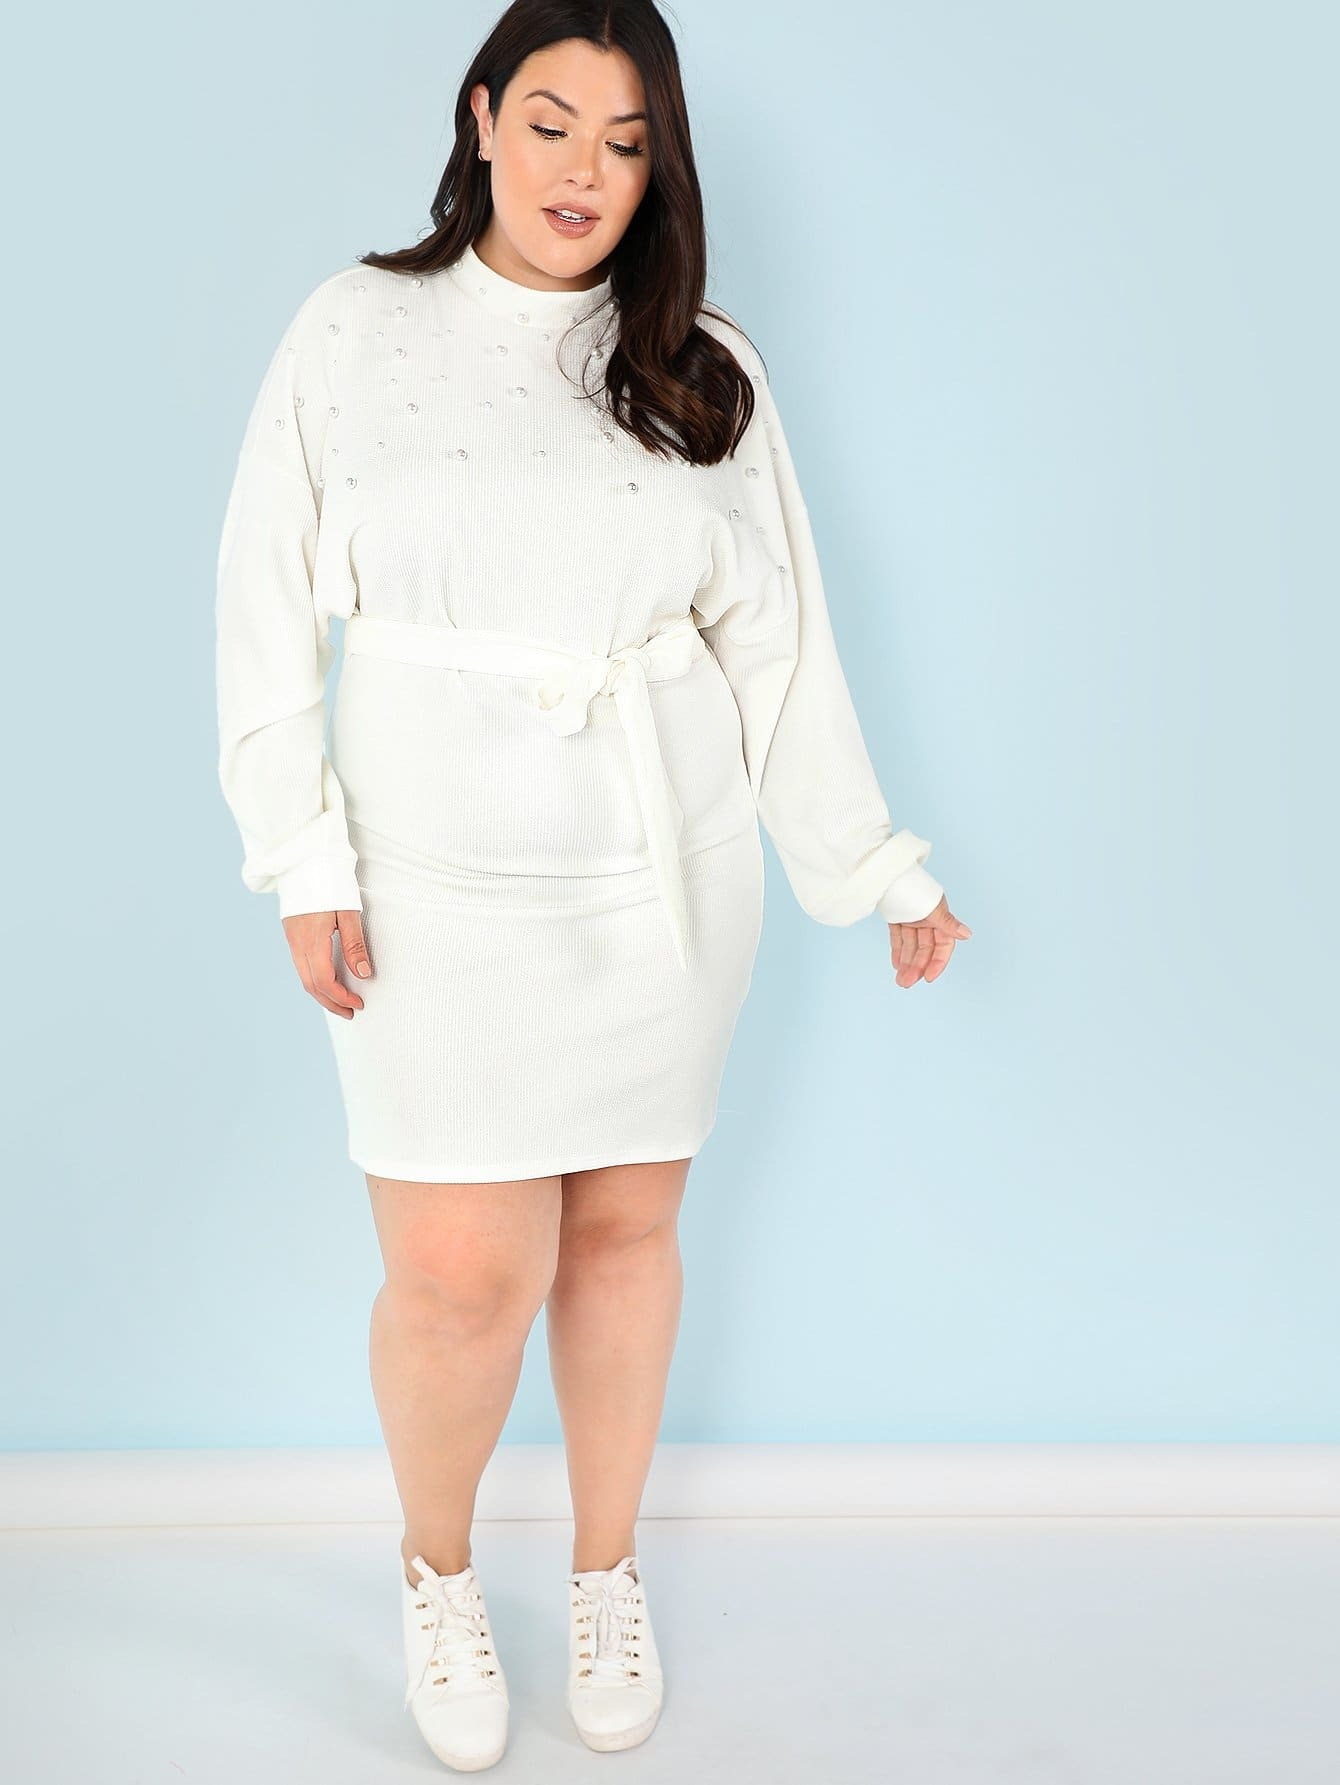 Plus Pearl Embellished Self Belted Dolman Dress набор проводов для усилителя supra sak 2 10